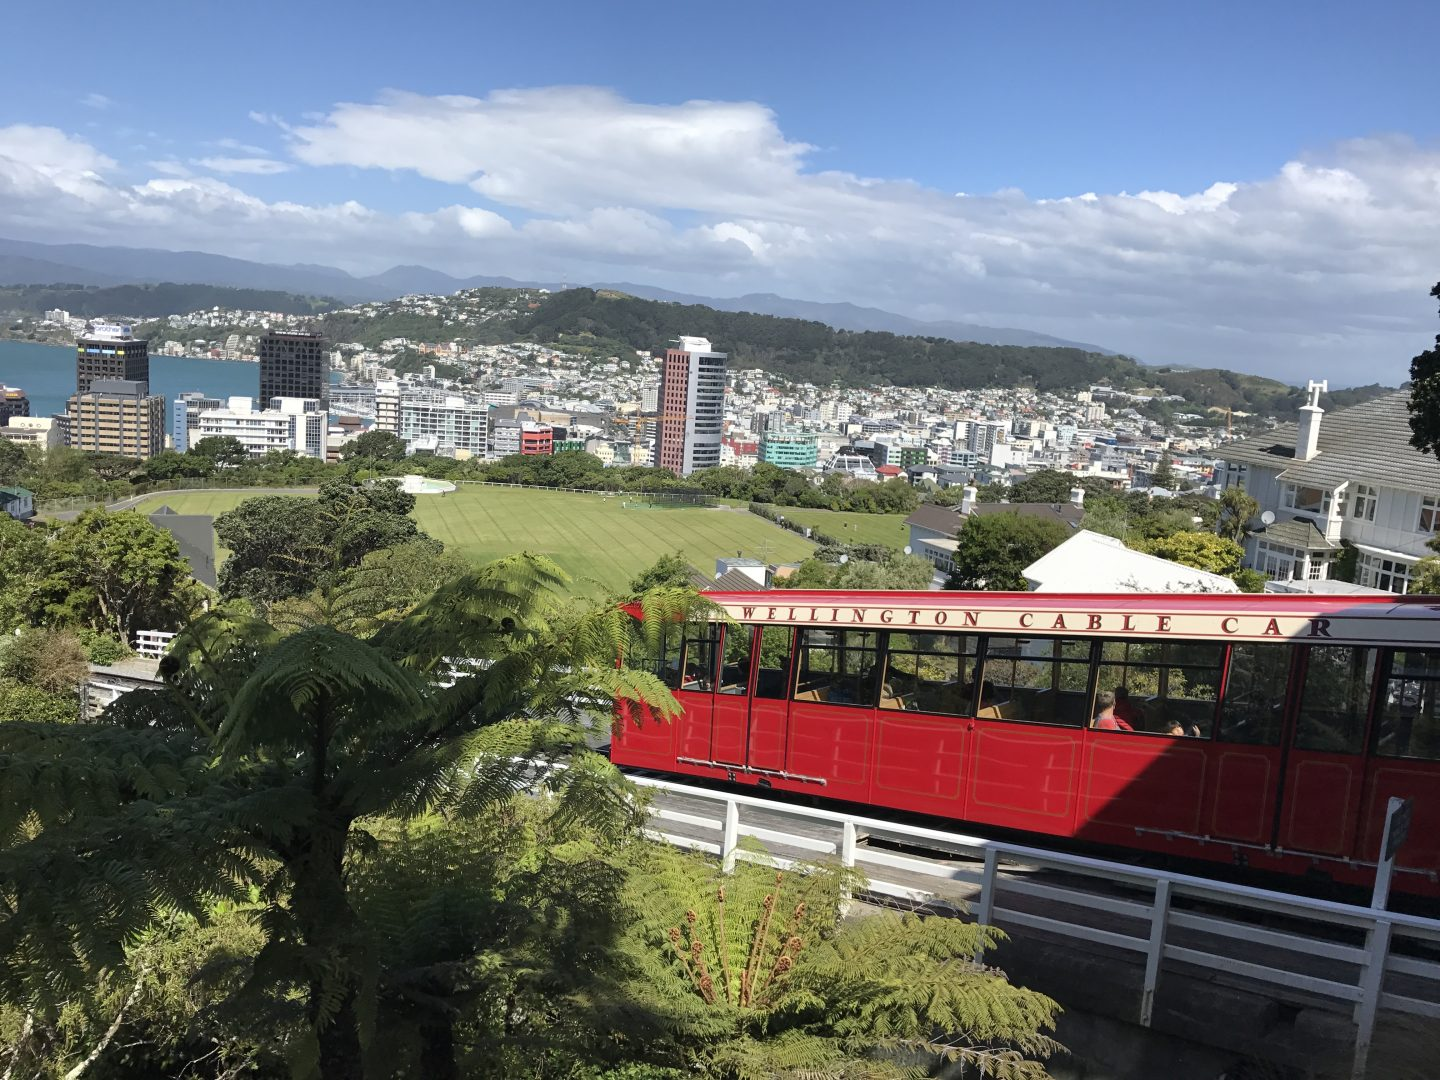 Wellington Cable Car. Our New Zealand Road Trip